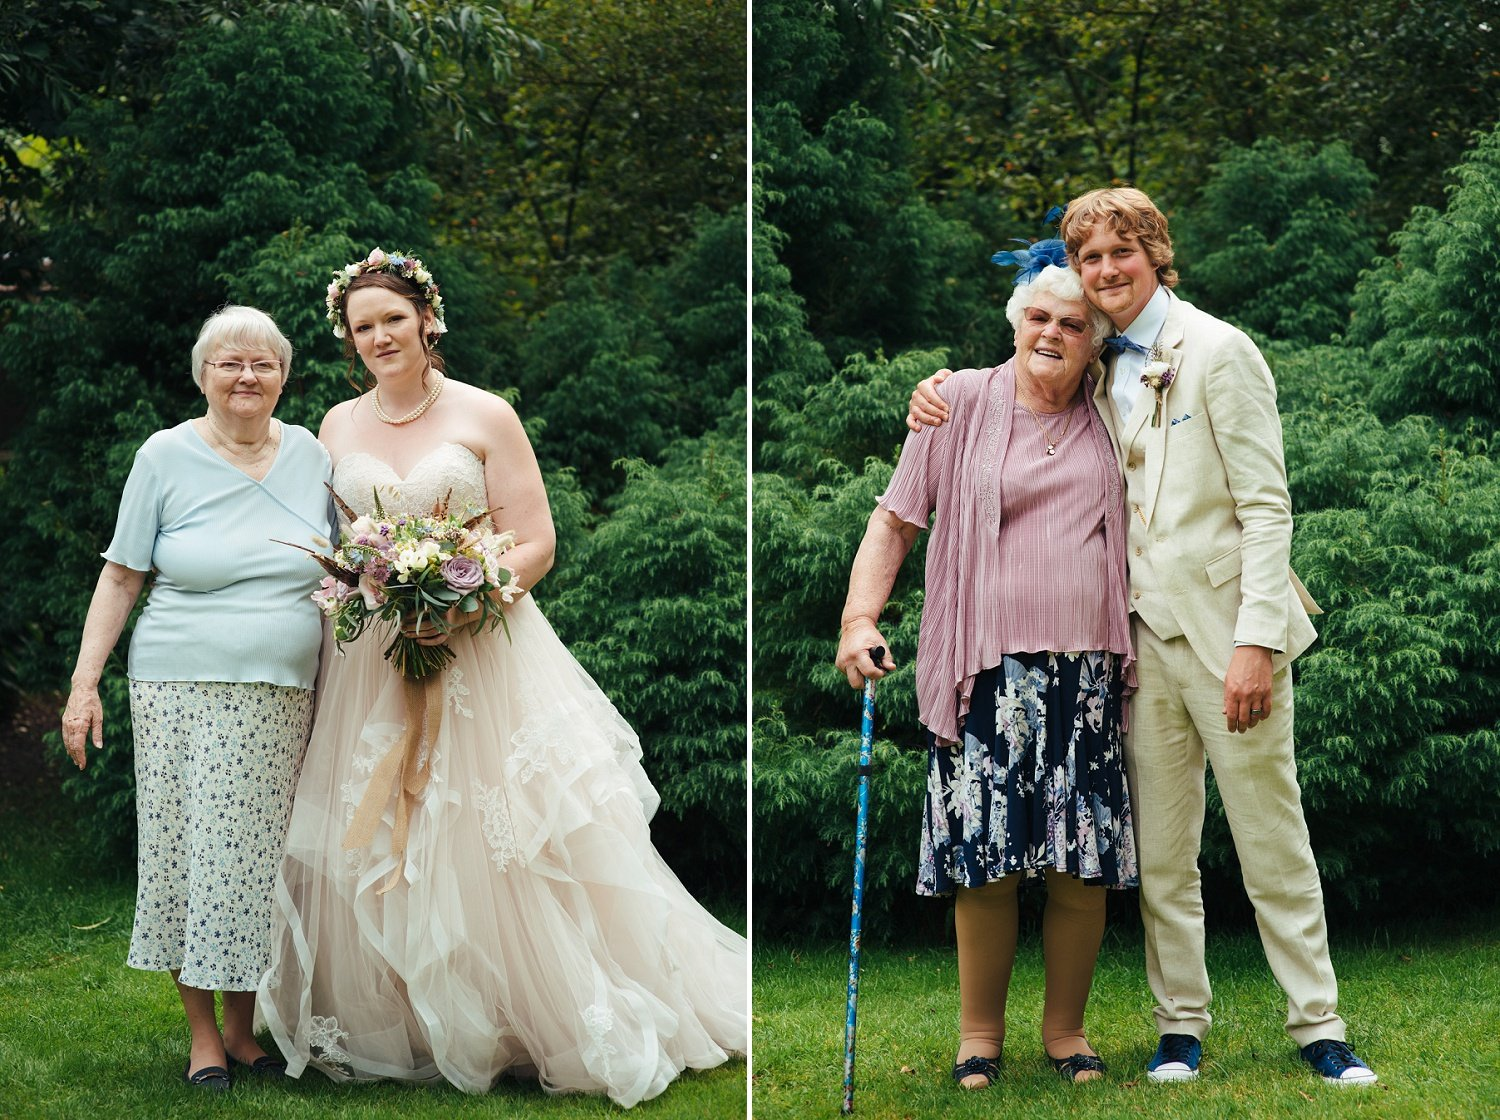 Bride and groom with their nans - portrait